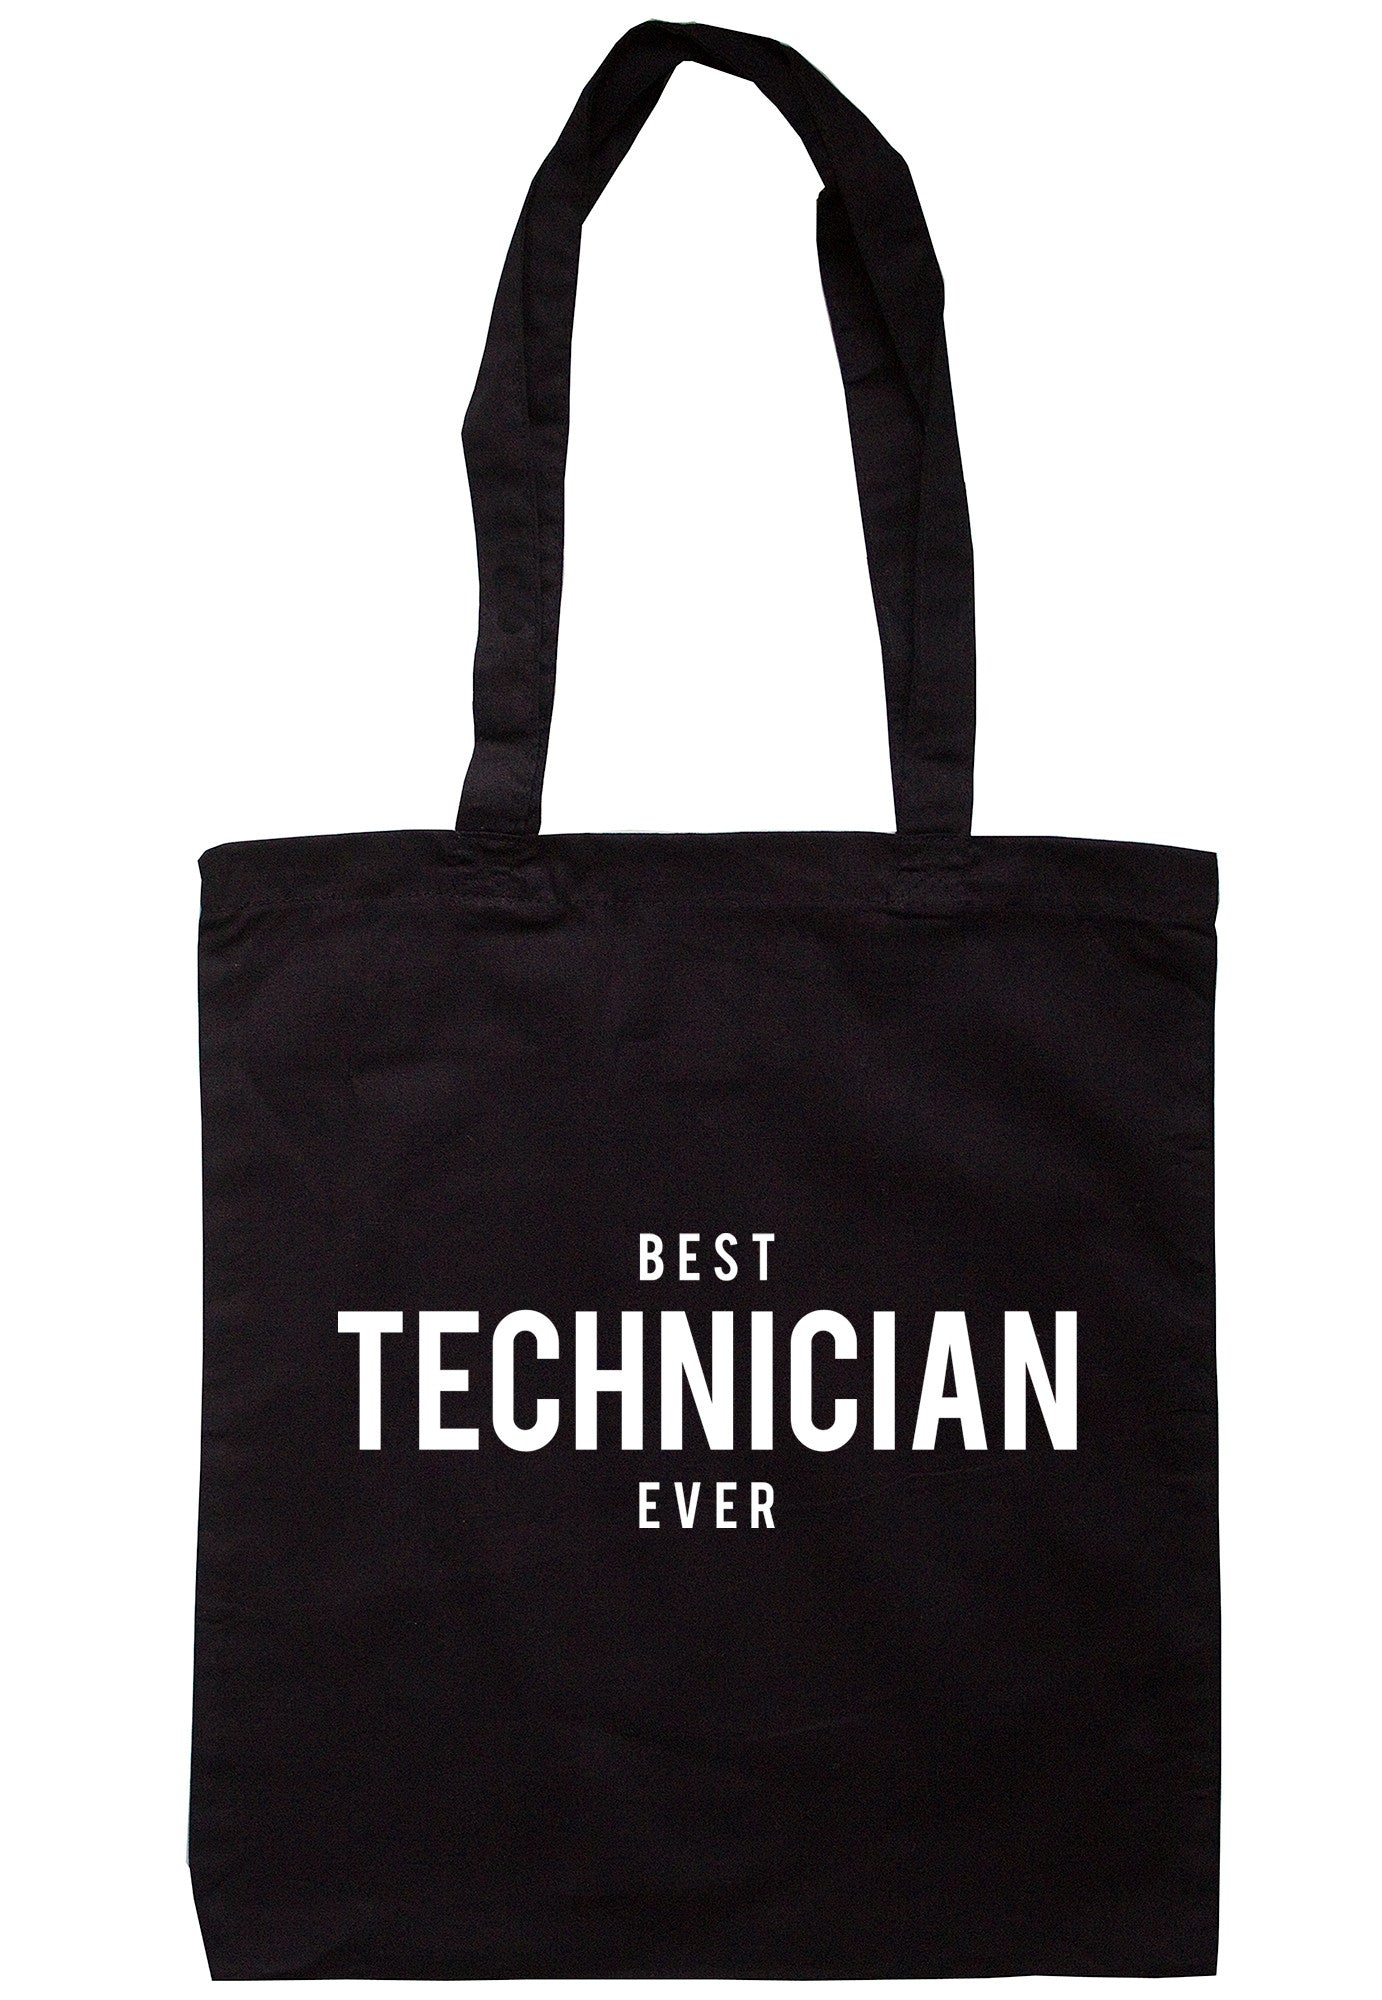 Best Technician Ever Tote Bag TB1308